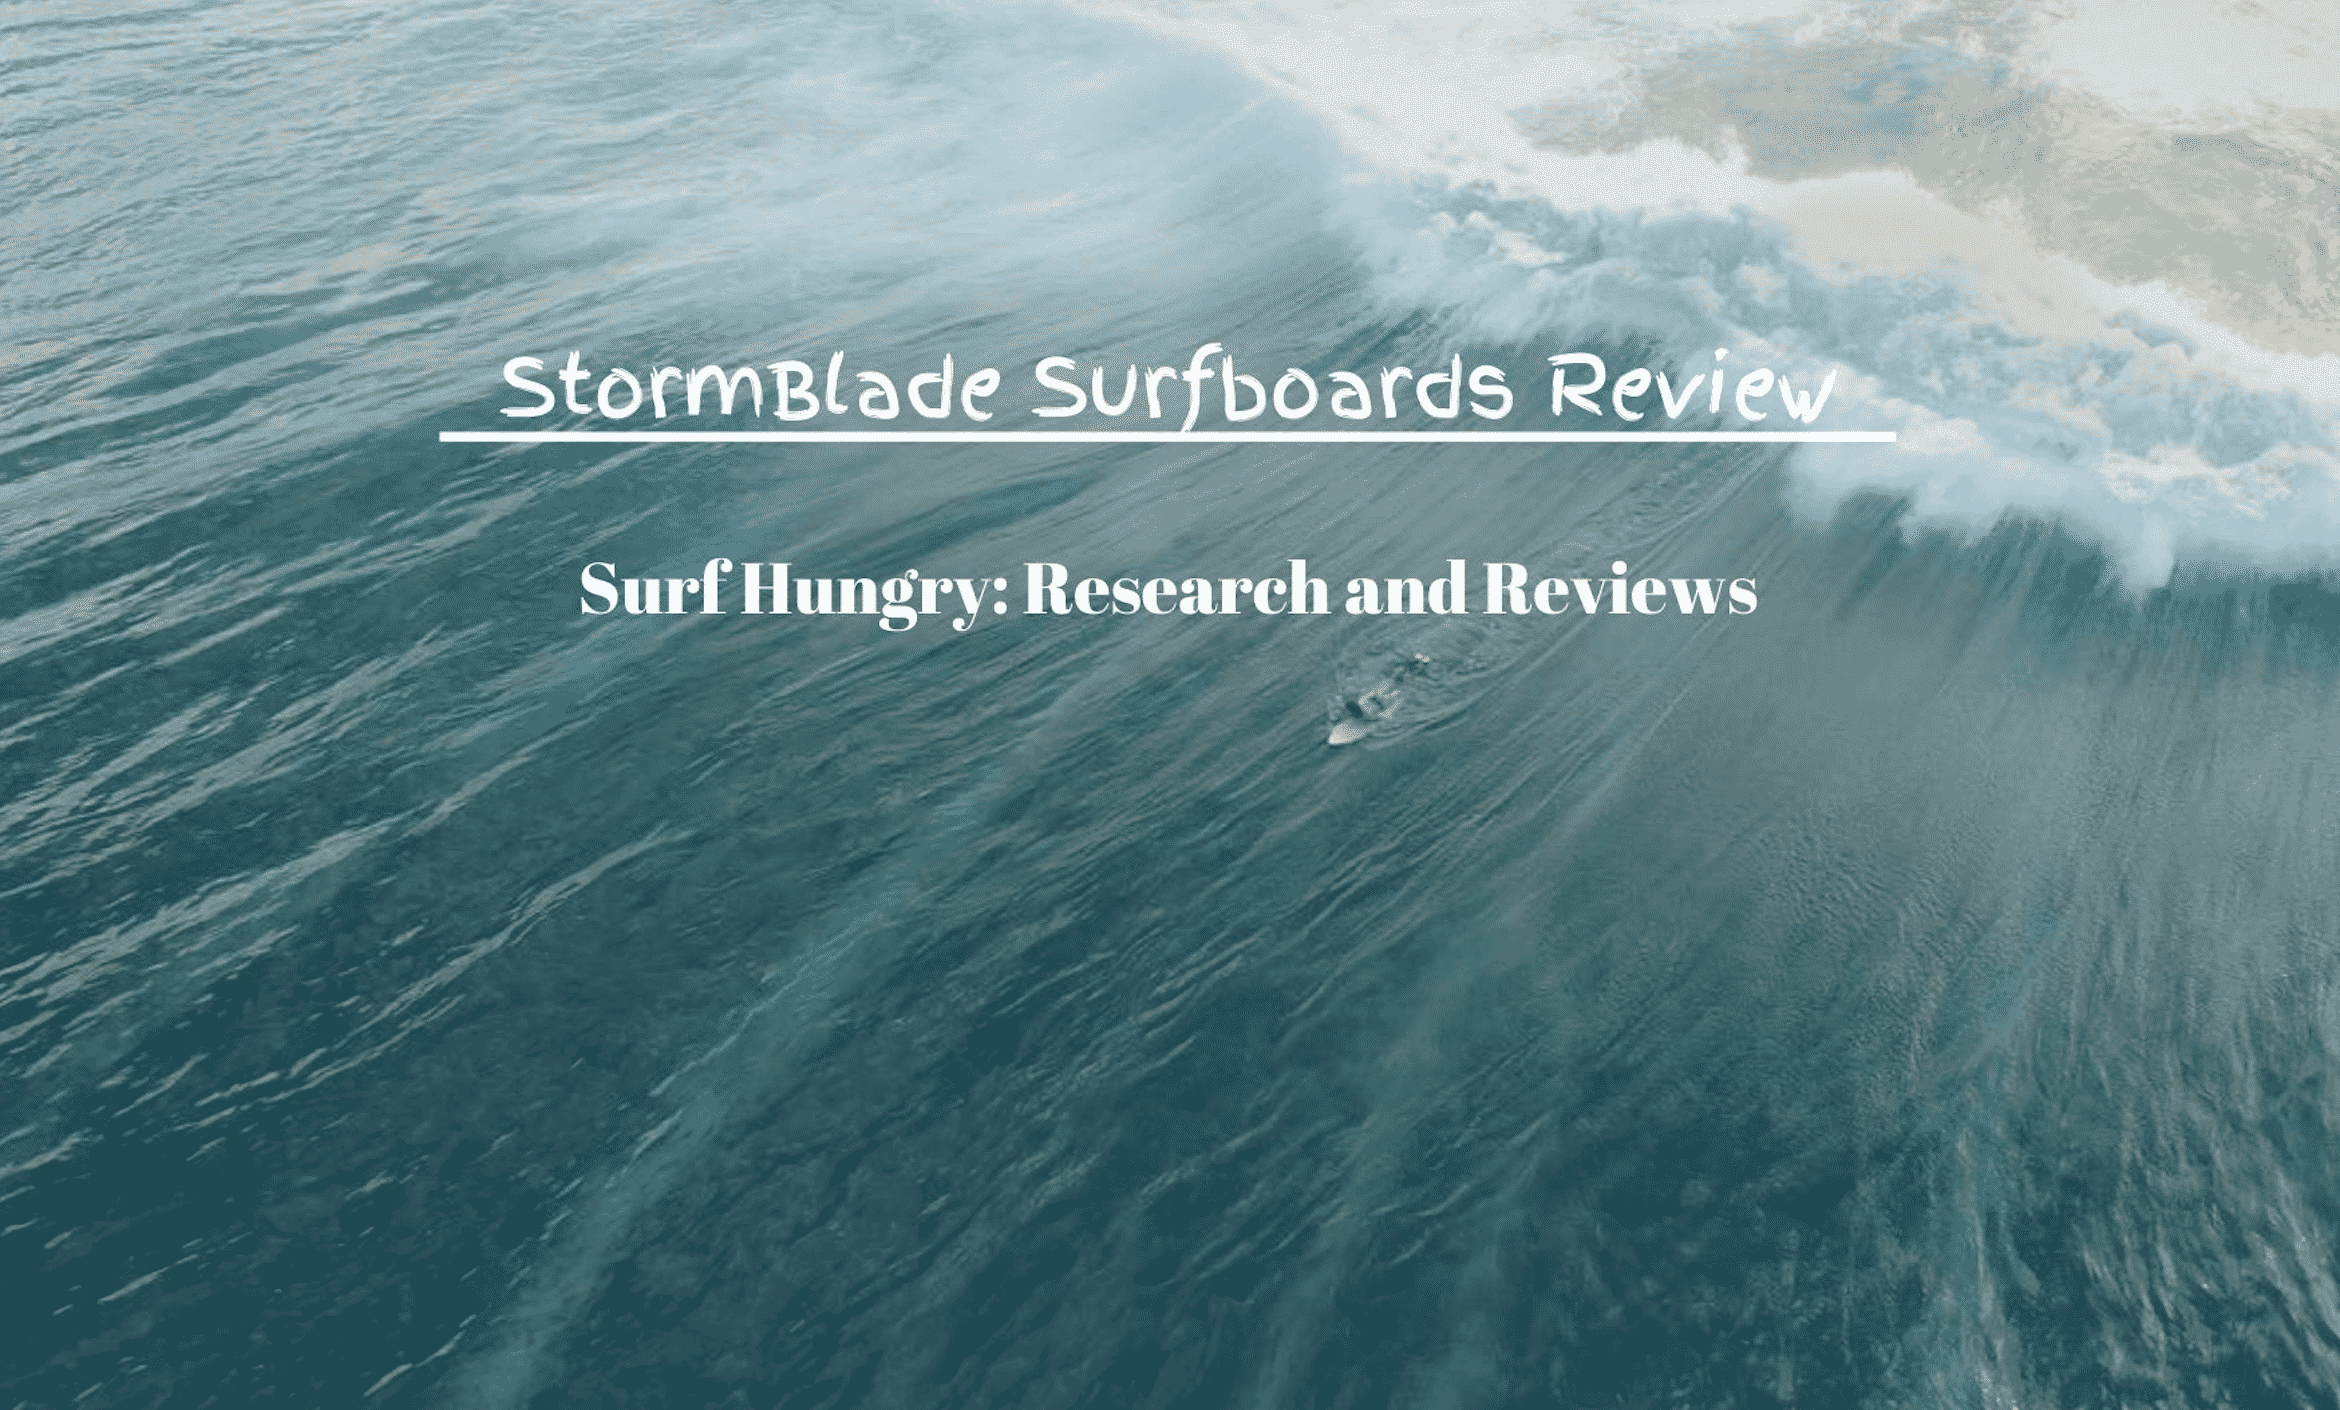 stormblade surfboards review